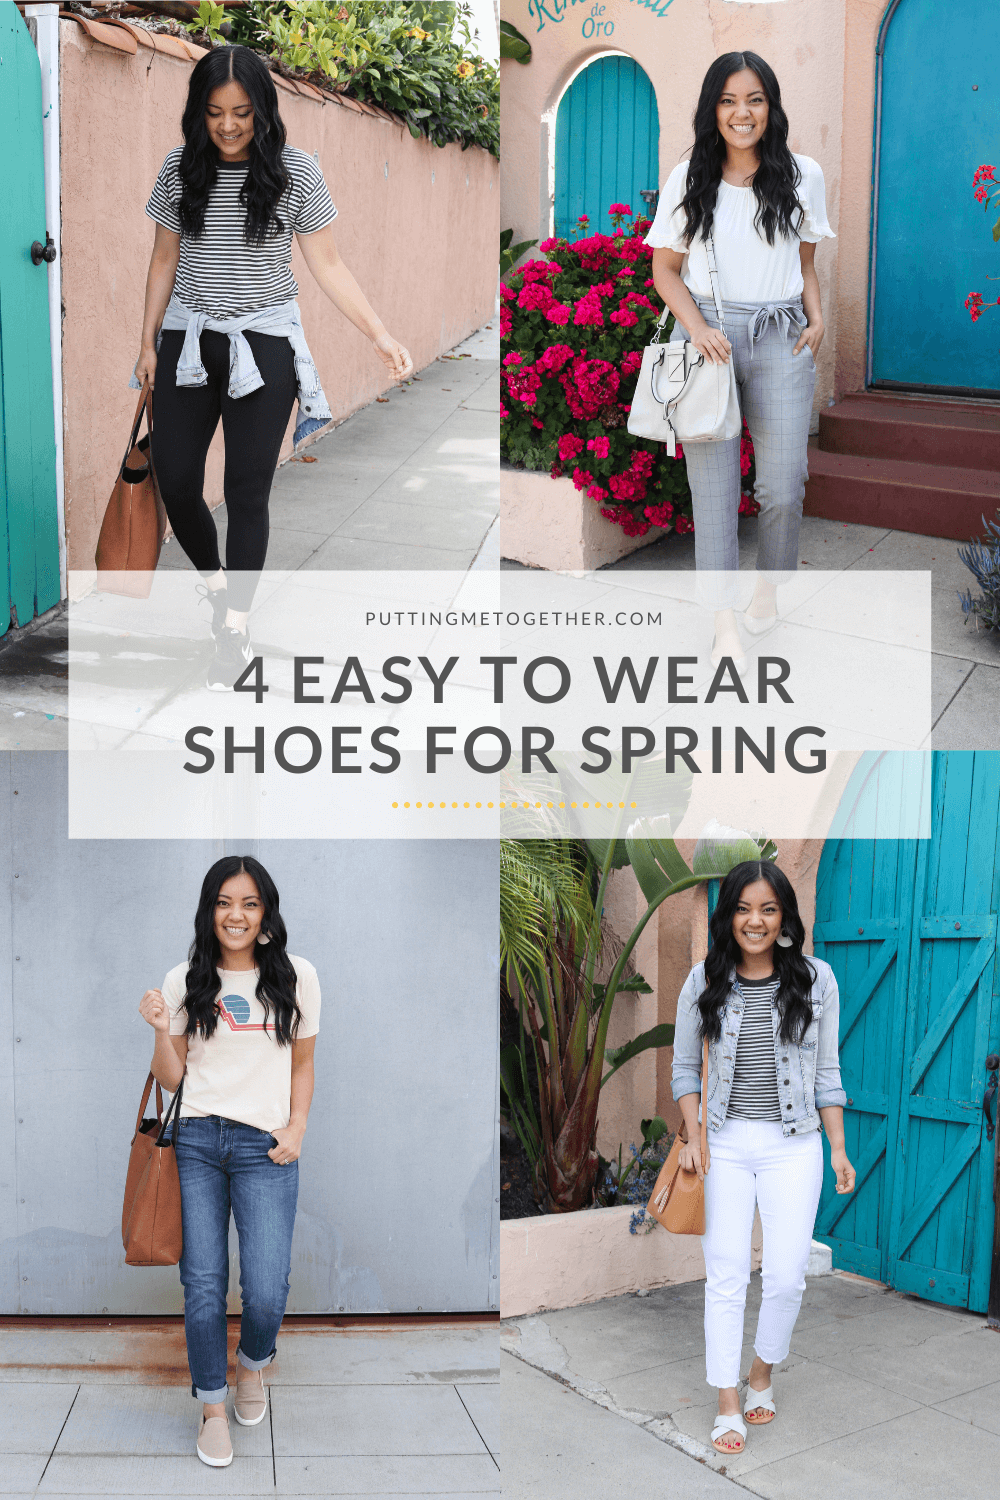 4 shoes to wear for spring